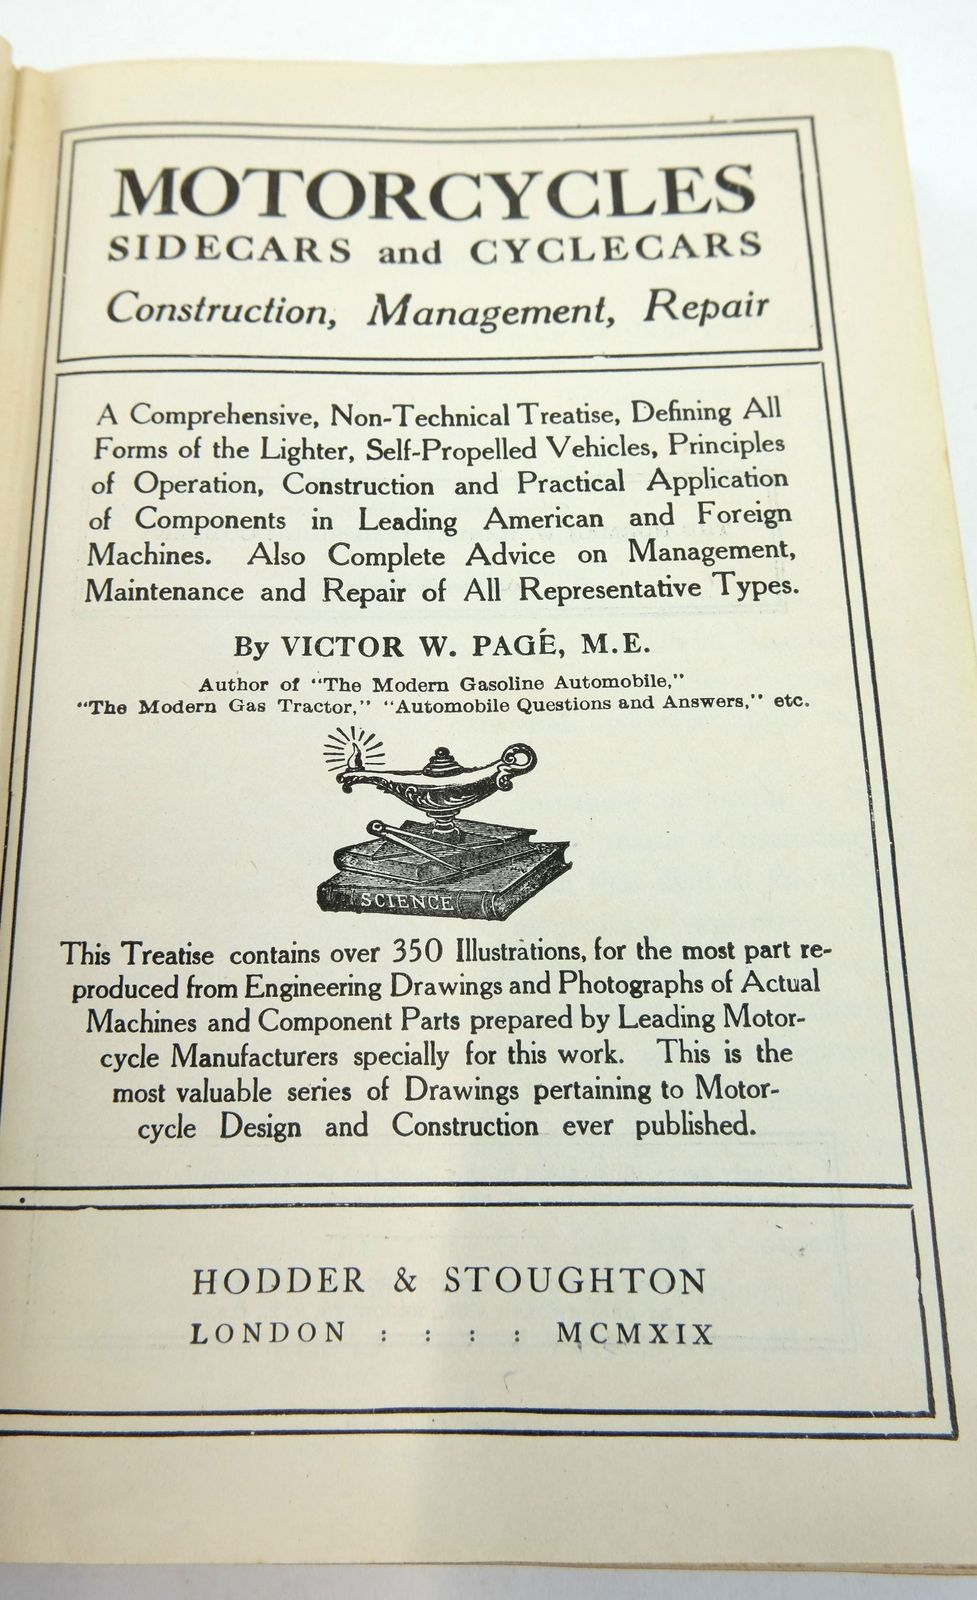 Photo of MOTORCYCLES SIDECARS AND CYCLECARS: CONSTRUCTION, MANAGEMENT, REPAIR written by Page, Victor W. published by Hodder & Stoughton (STOCK CODE: 1819457)  for sale by Stella & Rose's Books